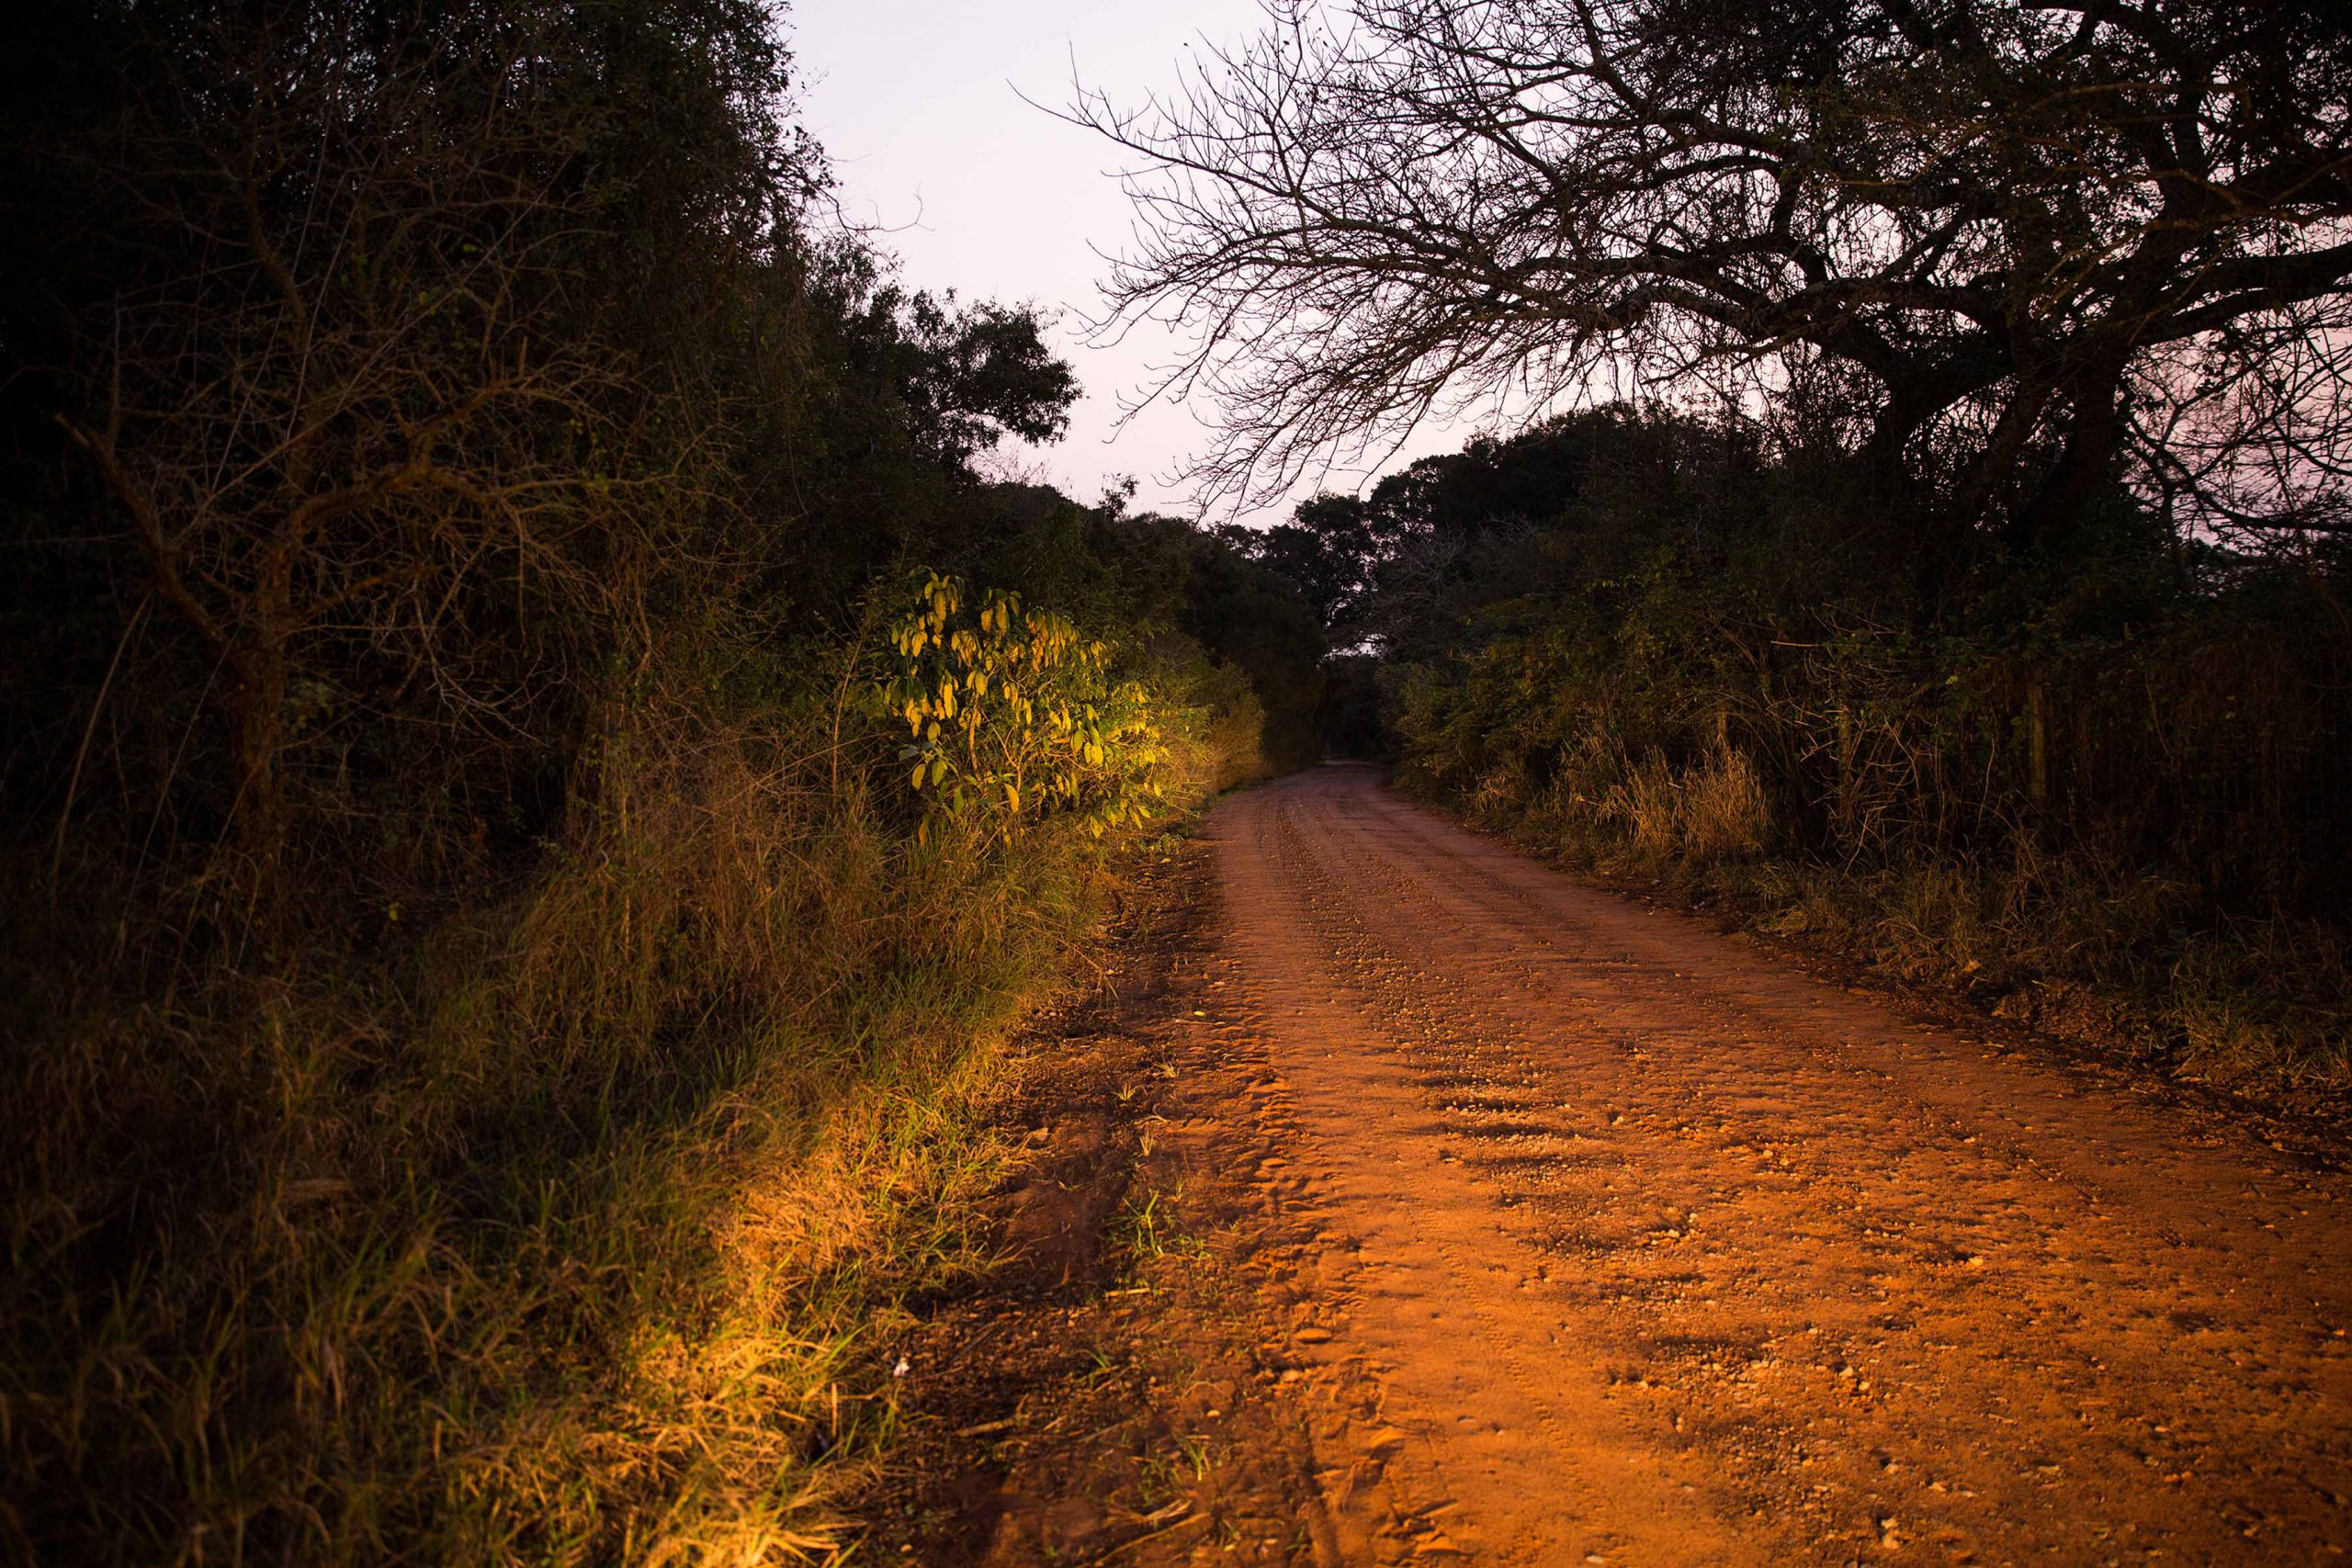 25 November 2018: Car headlights light up the rutted dirt road below Clare Stewart's former homestead on the outskirts of Manguzi. Stewart was abducted near her home on the morning of 10 November 1993.